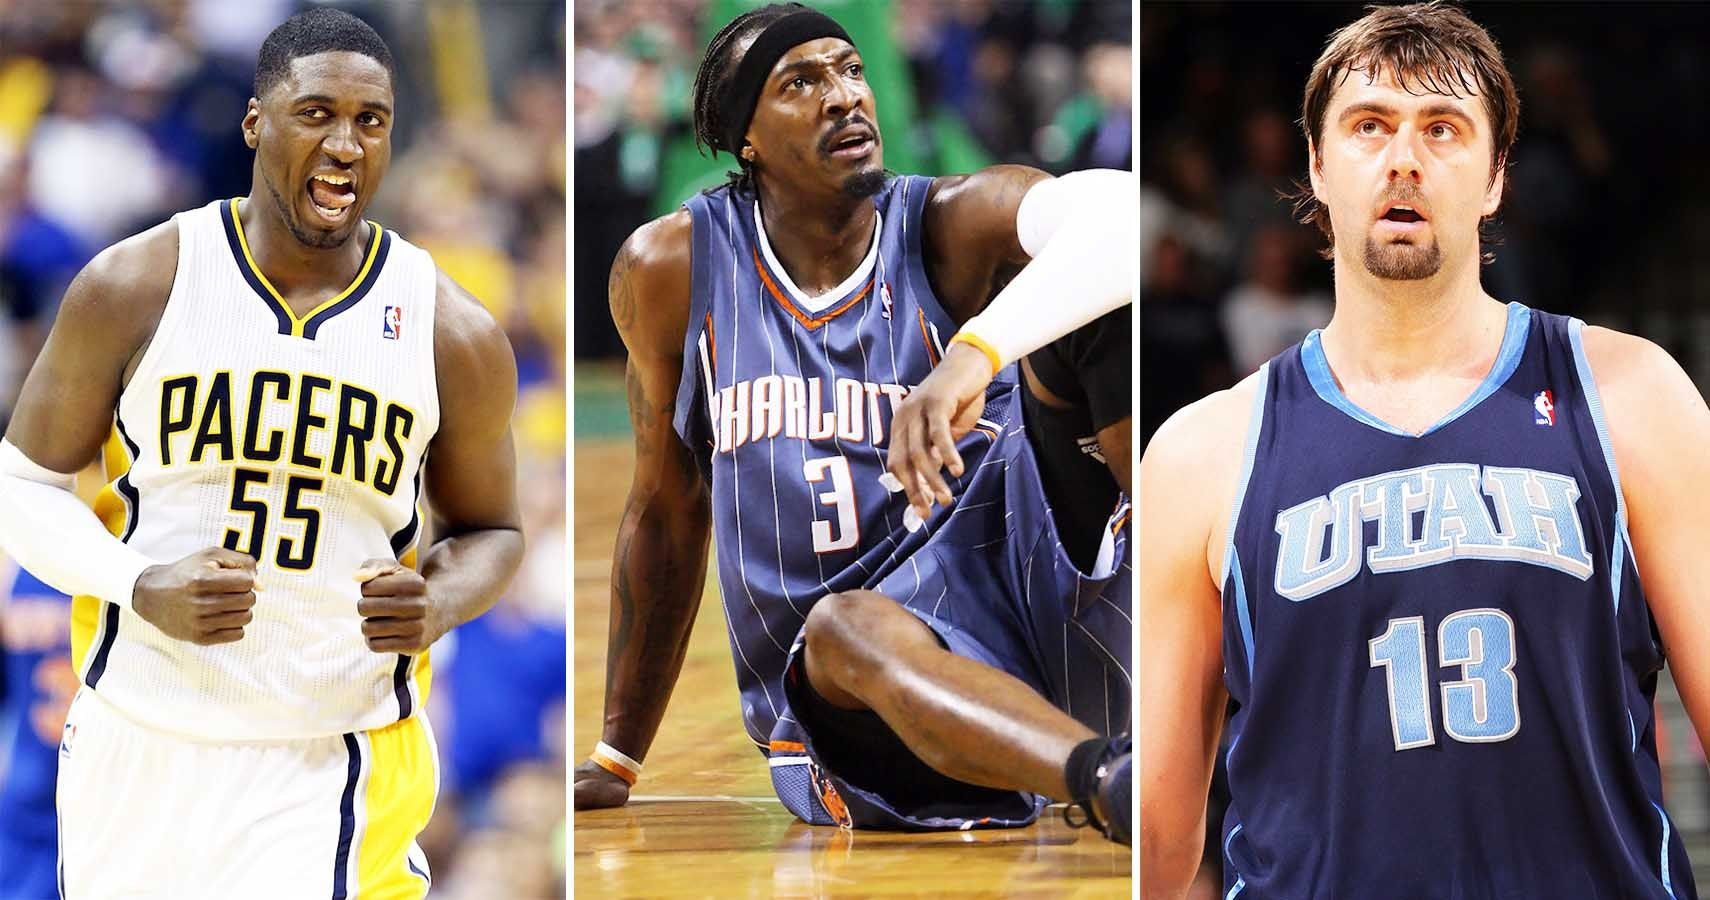 f24245220c41 Ranking The 15 Worst NBA All-Stars Since 2000